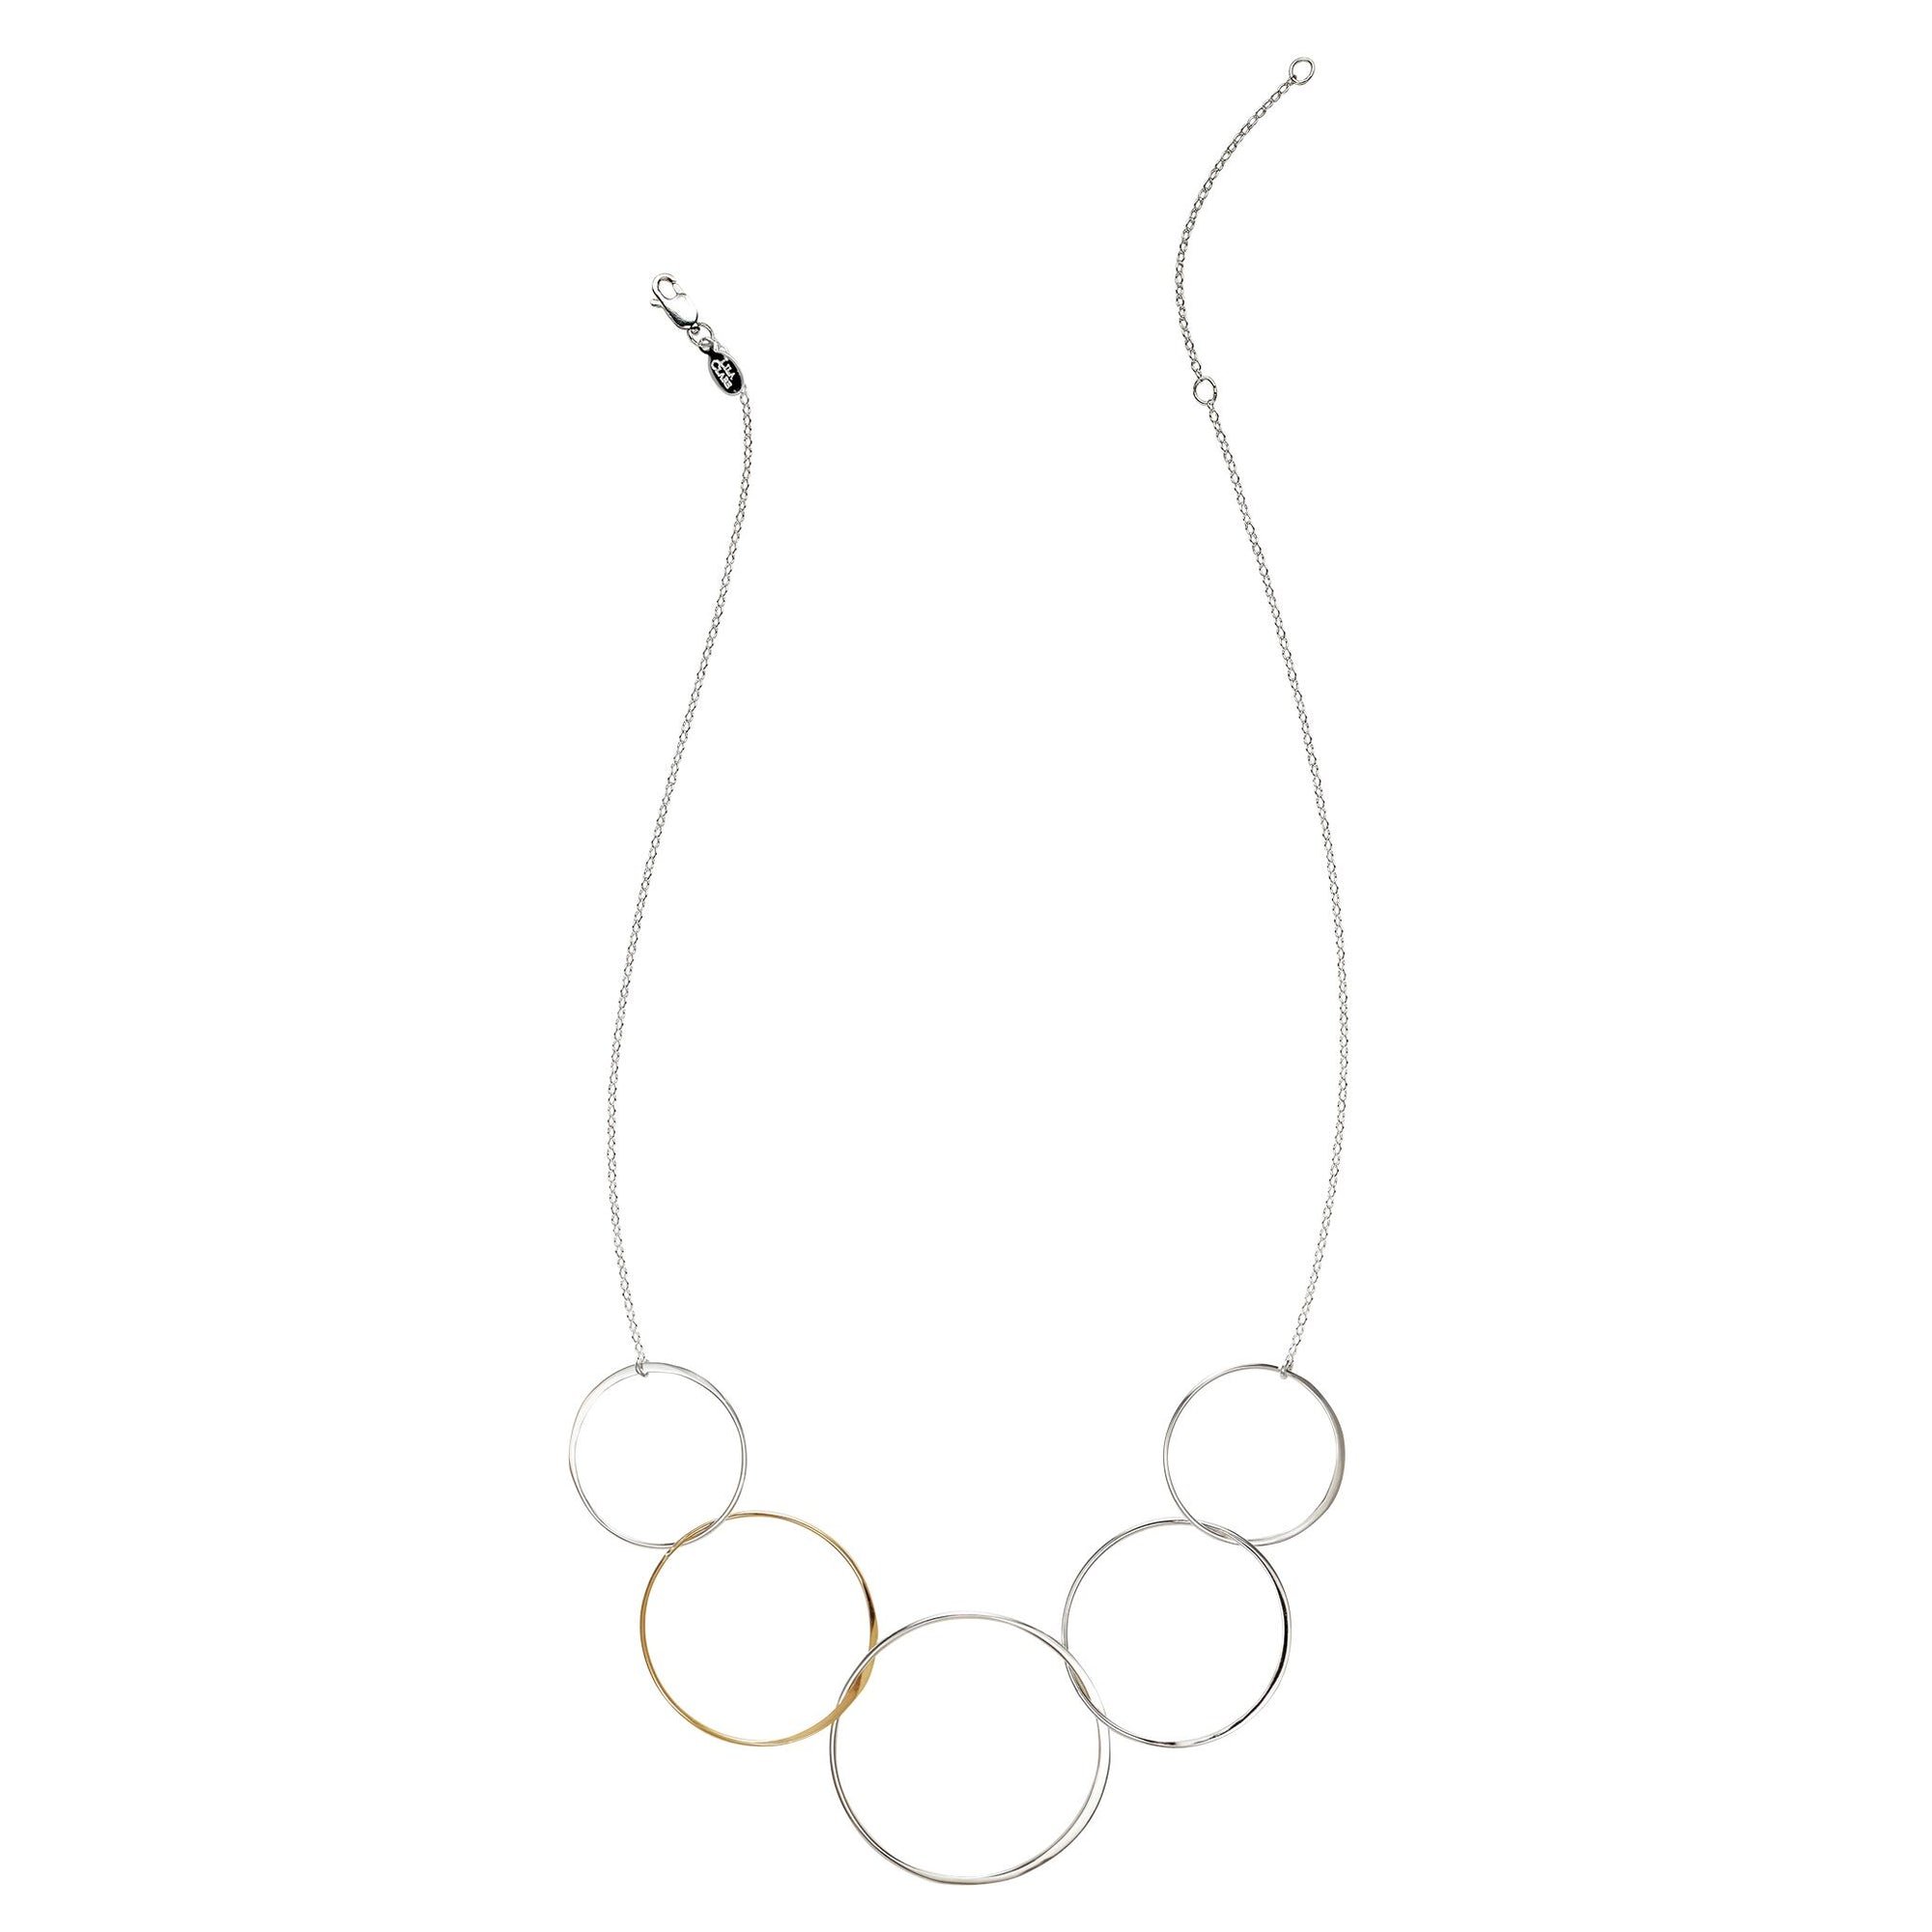 Cynthia XL Five Gold & Silver Linked Circle Necklace